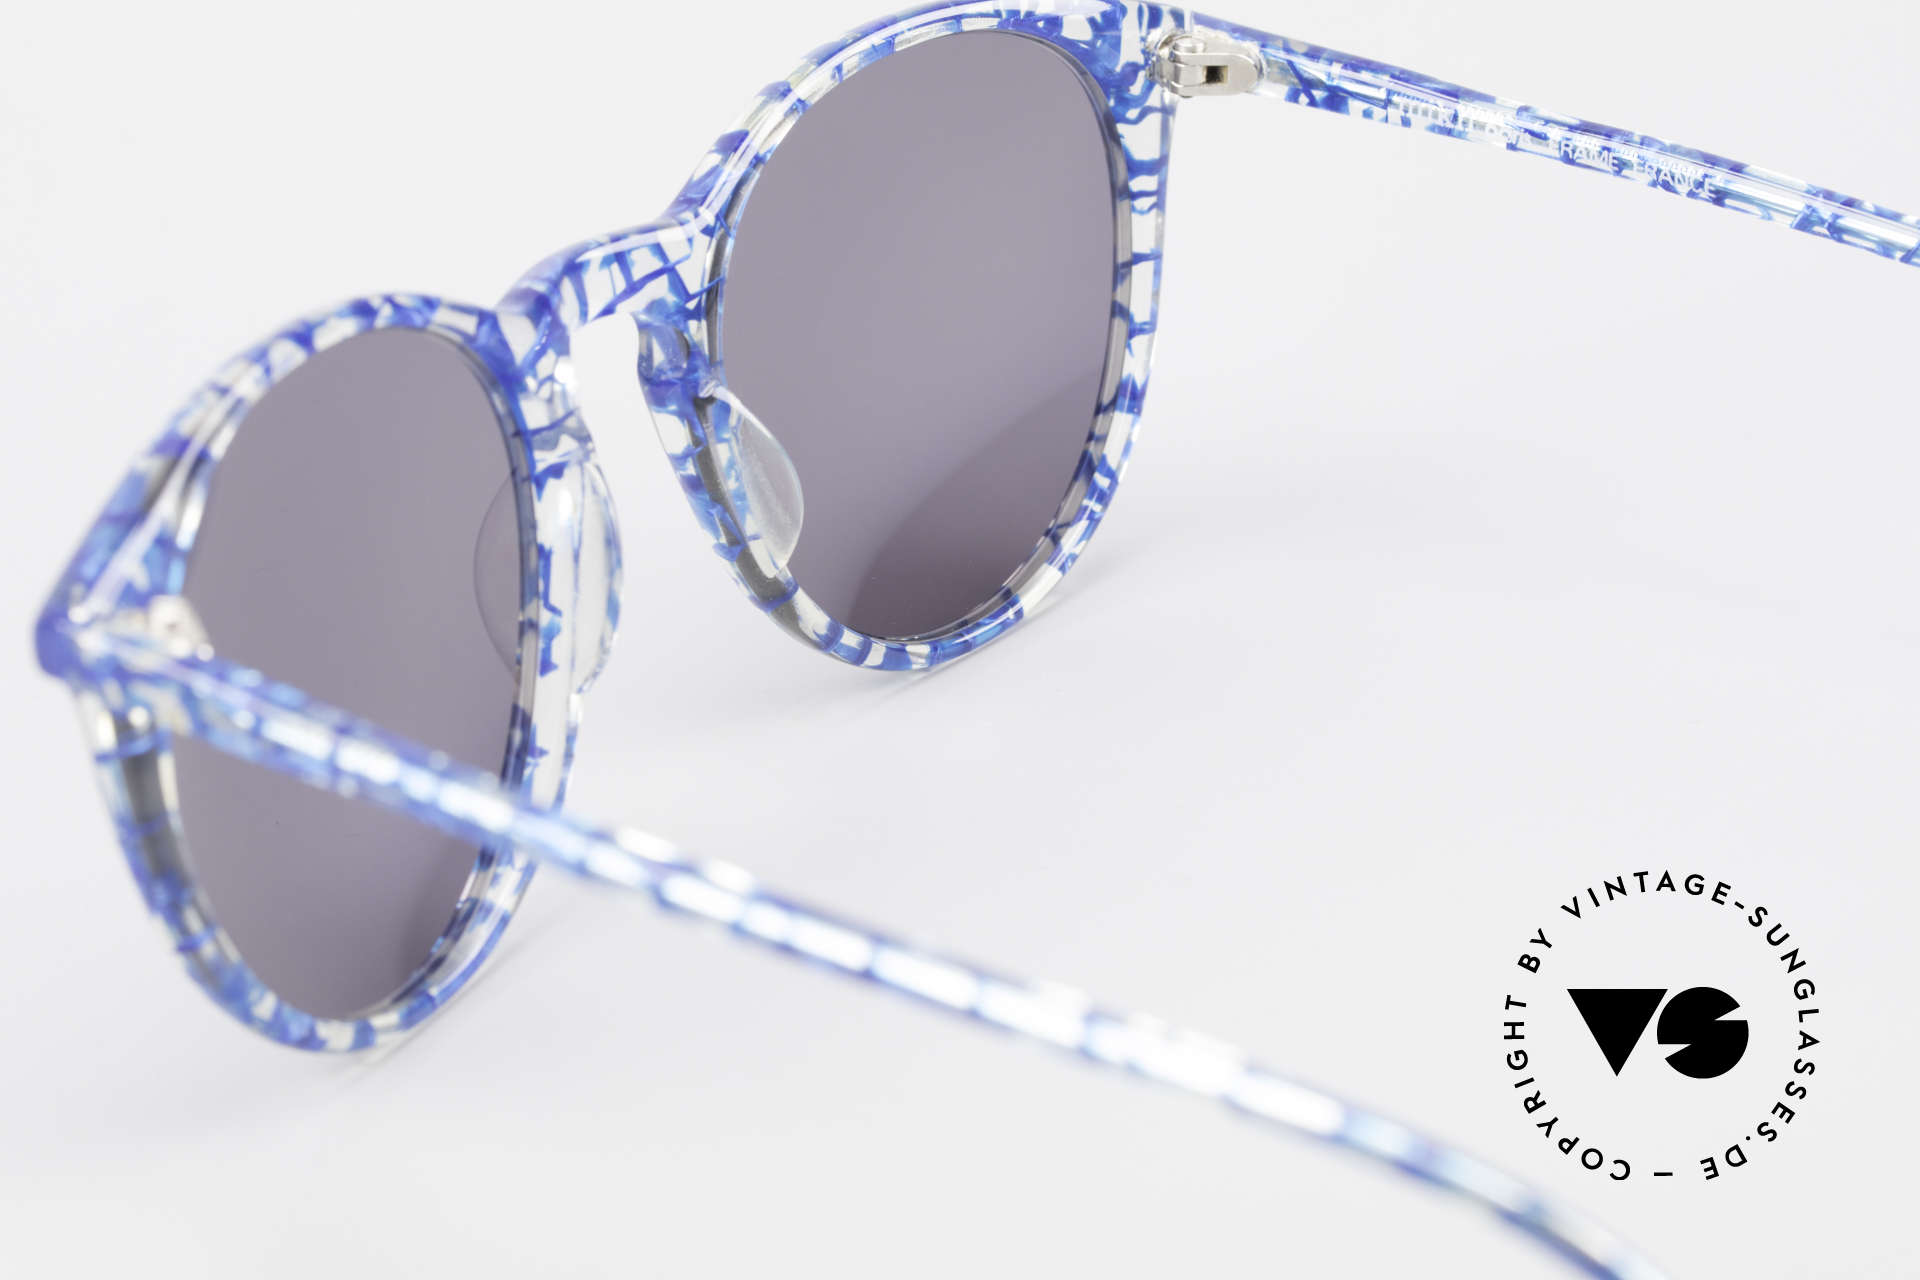 Alain Mikli 901 / 323 Panto Sunglasses Crystal Blue, NO RETRO shades, but an old ORIGINAL from 1989, Made for Men and Women